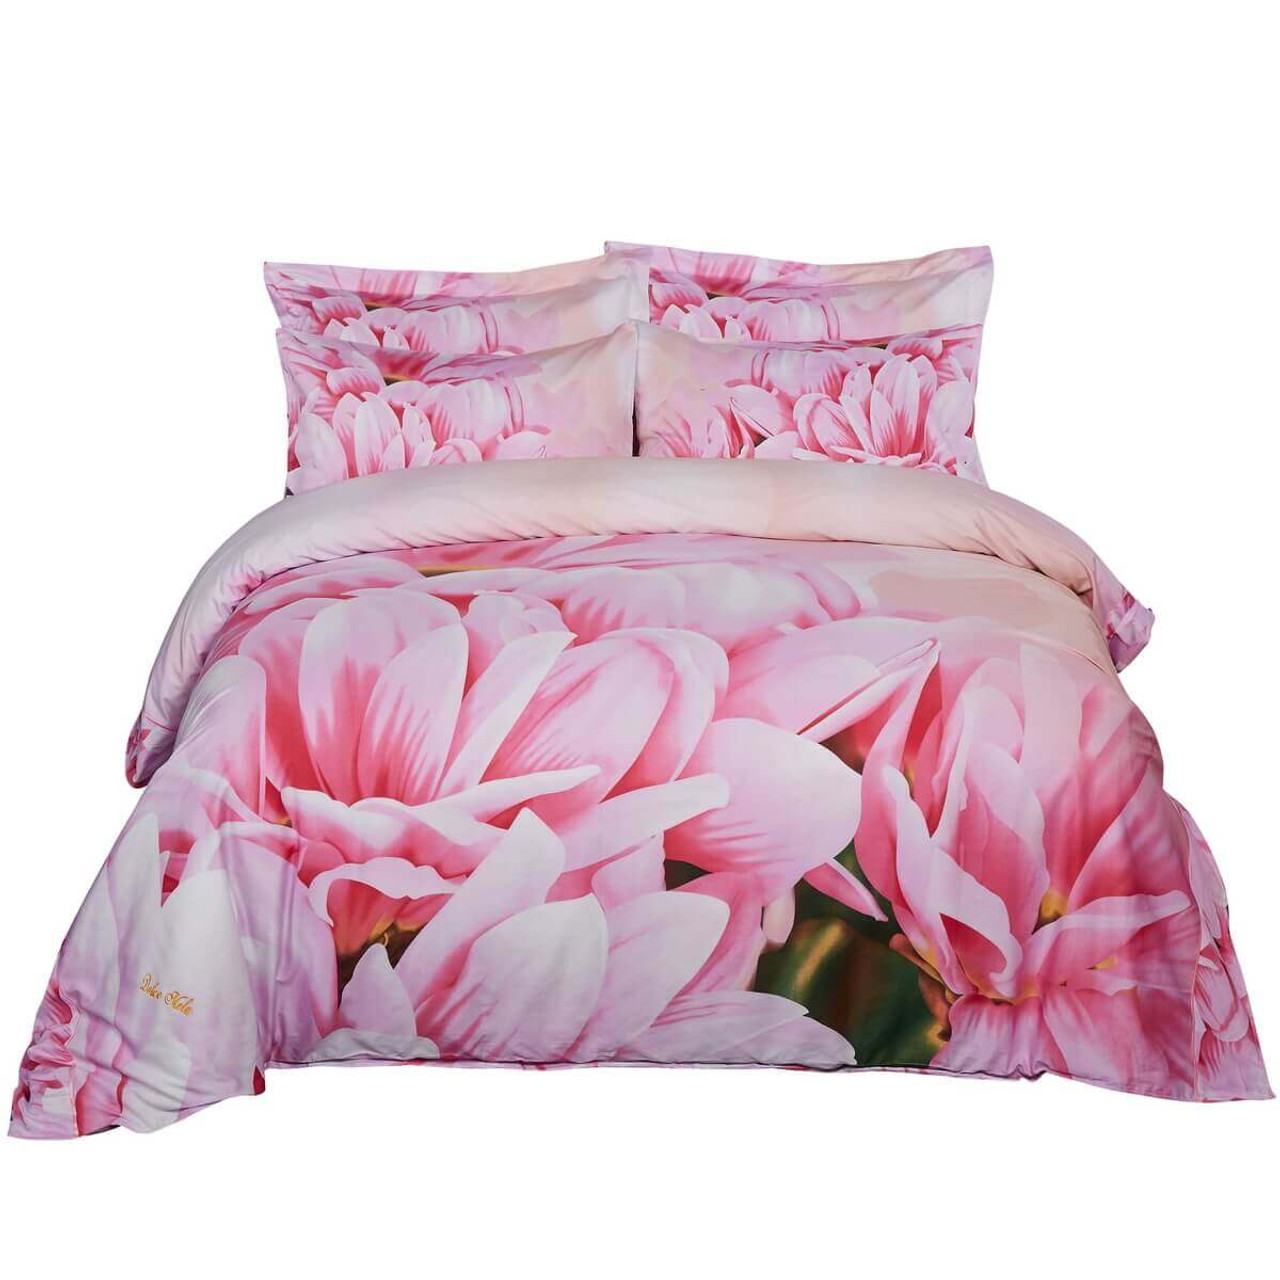 Queen size Floral Bedding, Dolce Mela - May DM701Q Drop-shipping